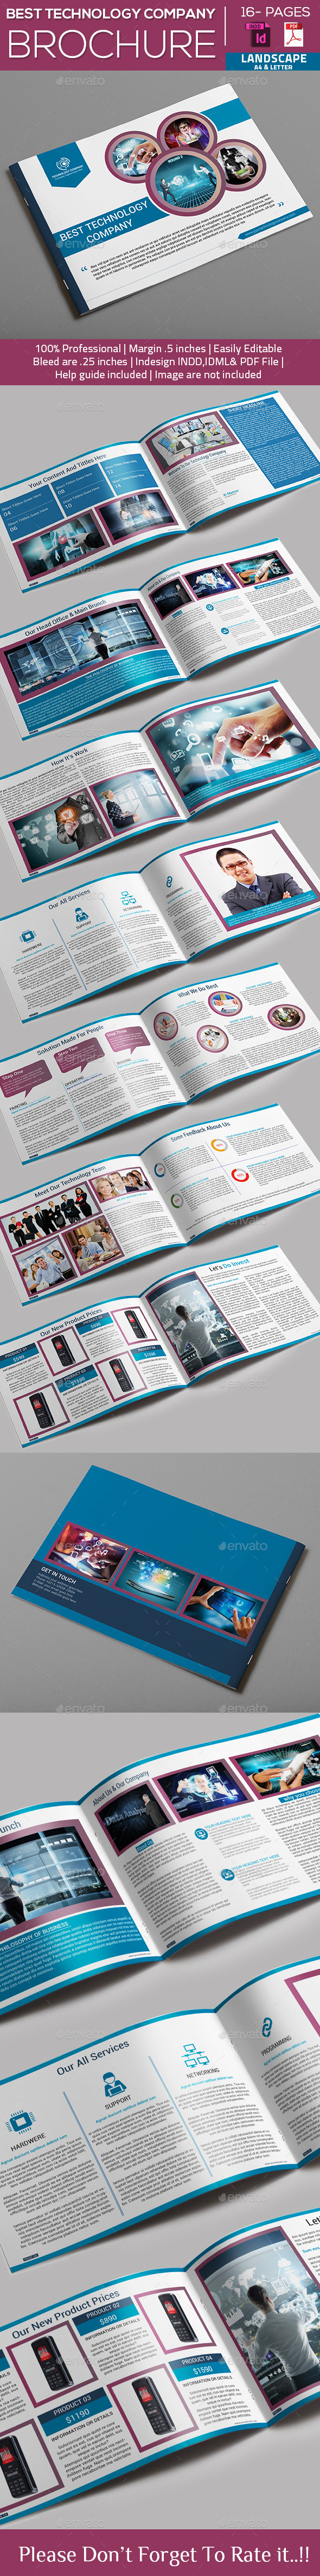 GraphicRiver Best Technology Company Brochure 10432383